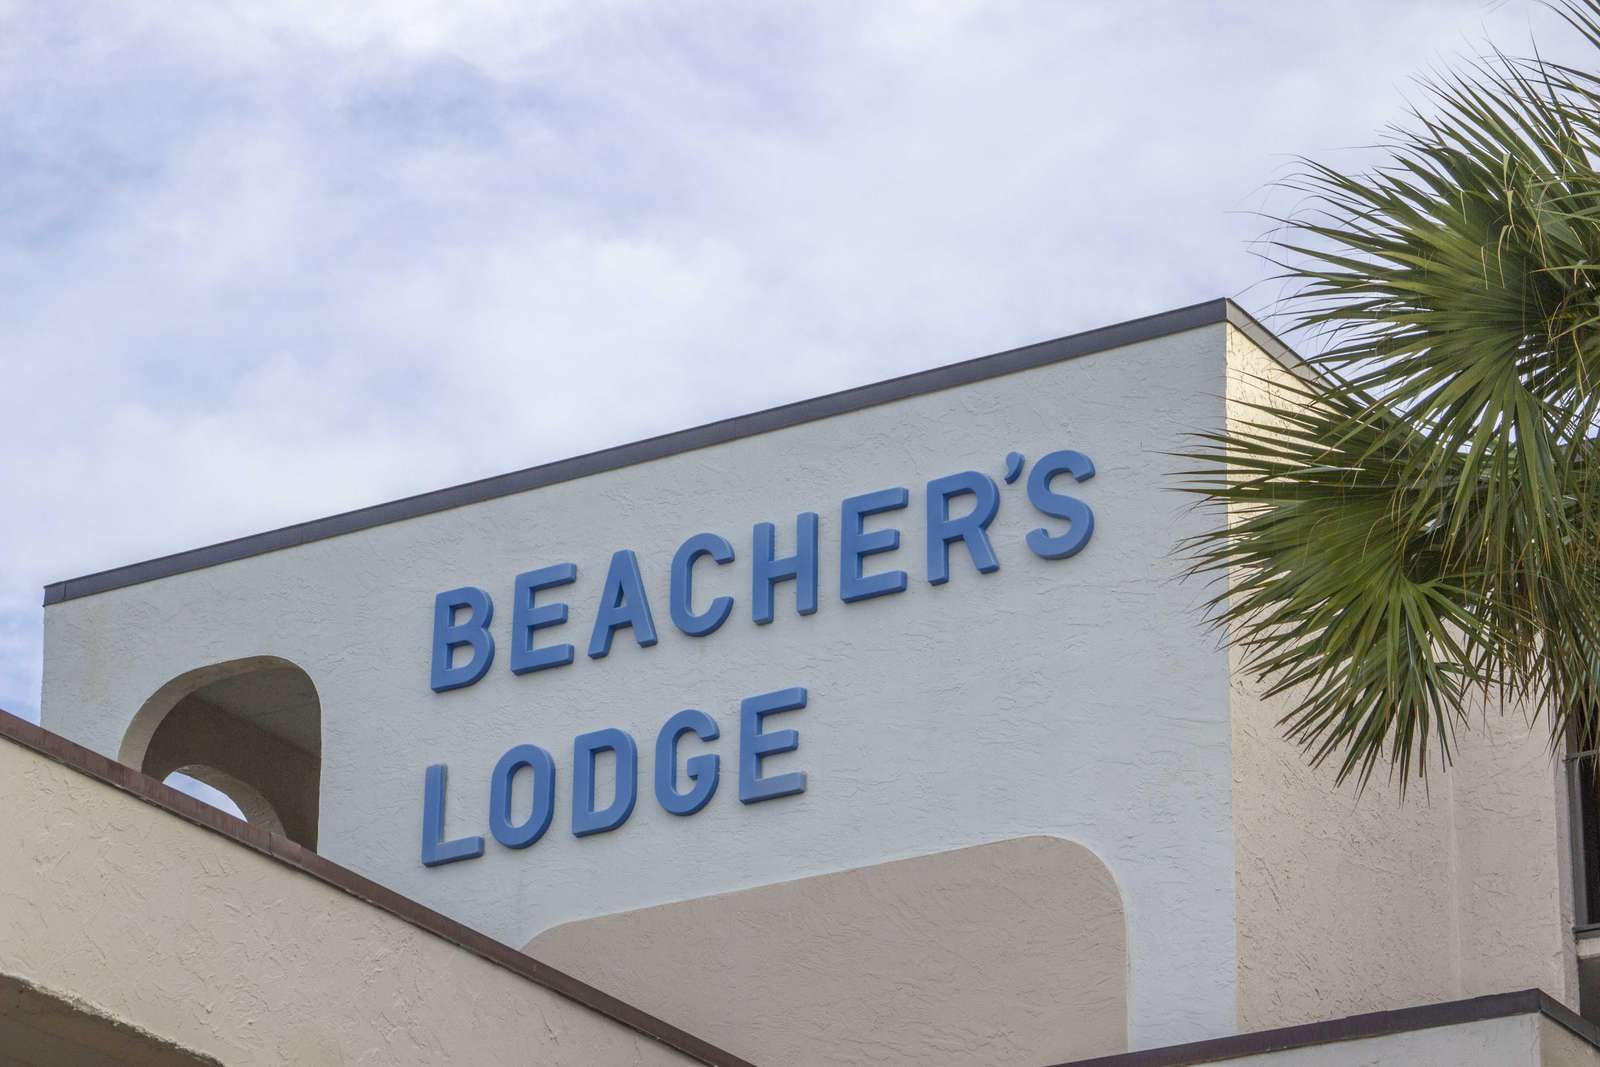 Beachers Lodge 307